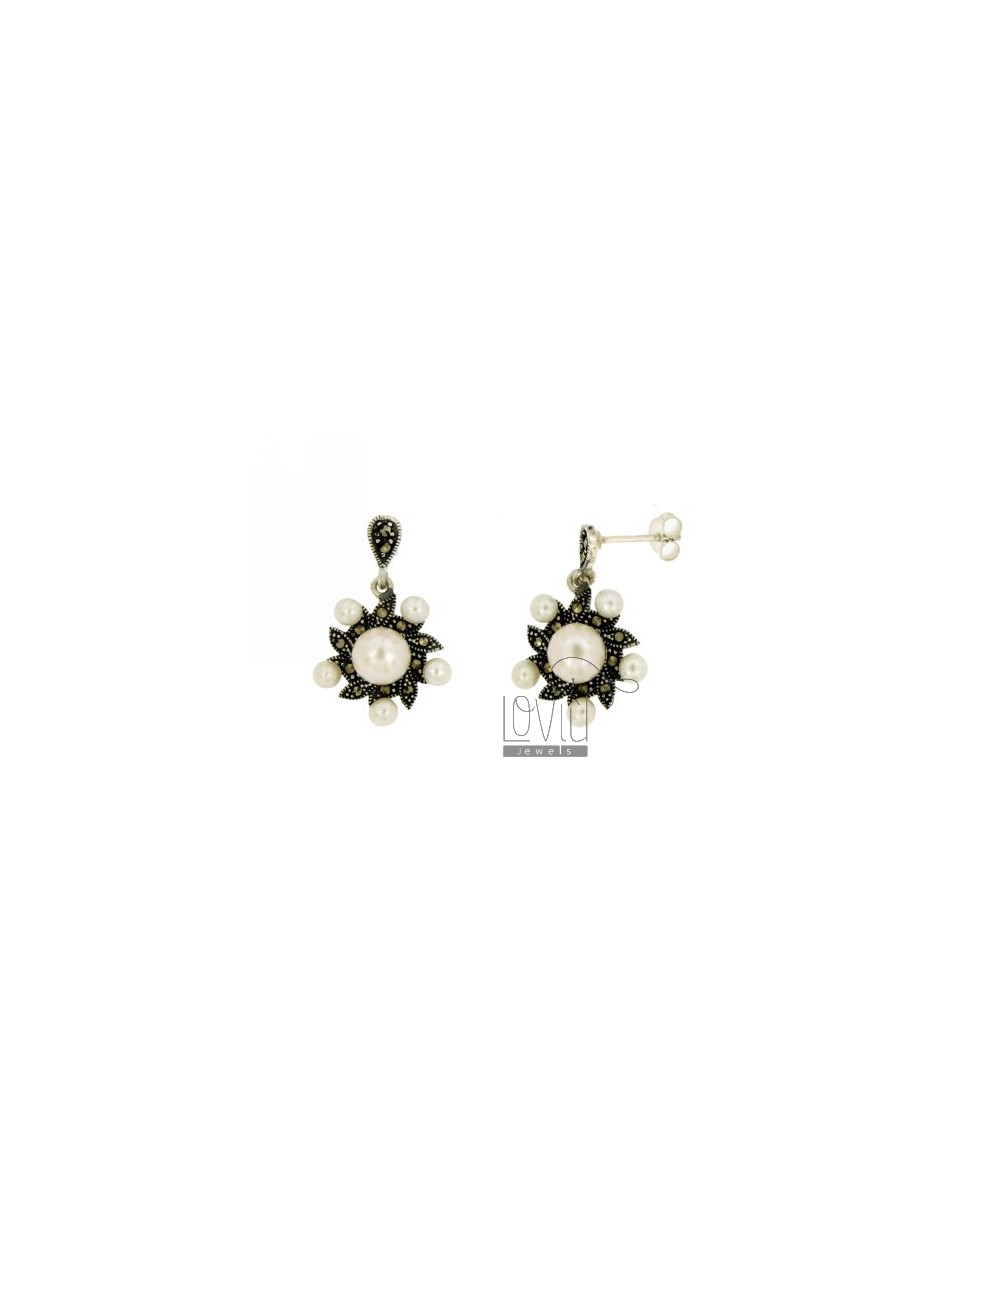 Earrings MARCASITE ARGENTIO TIT IN 925 AND PEARLS